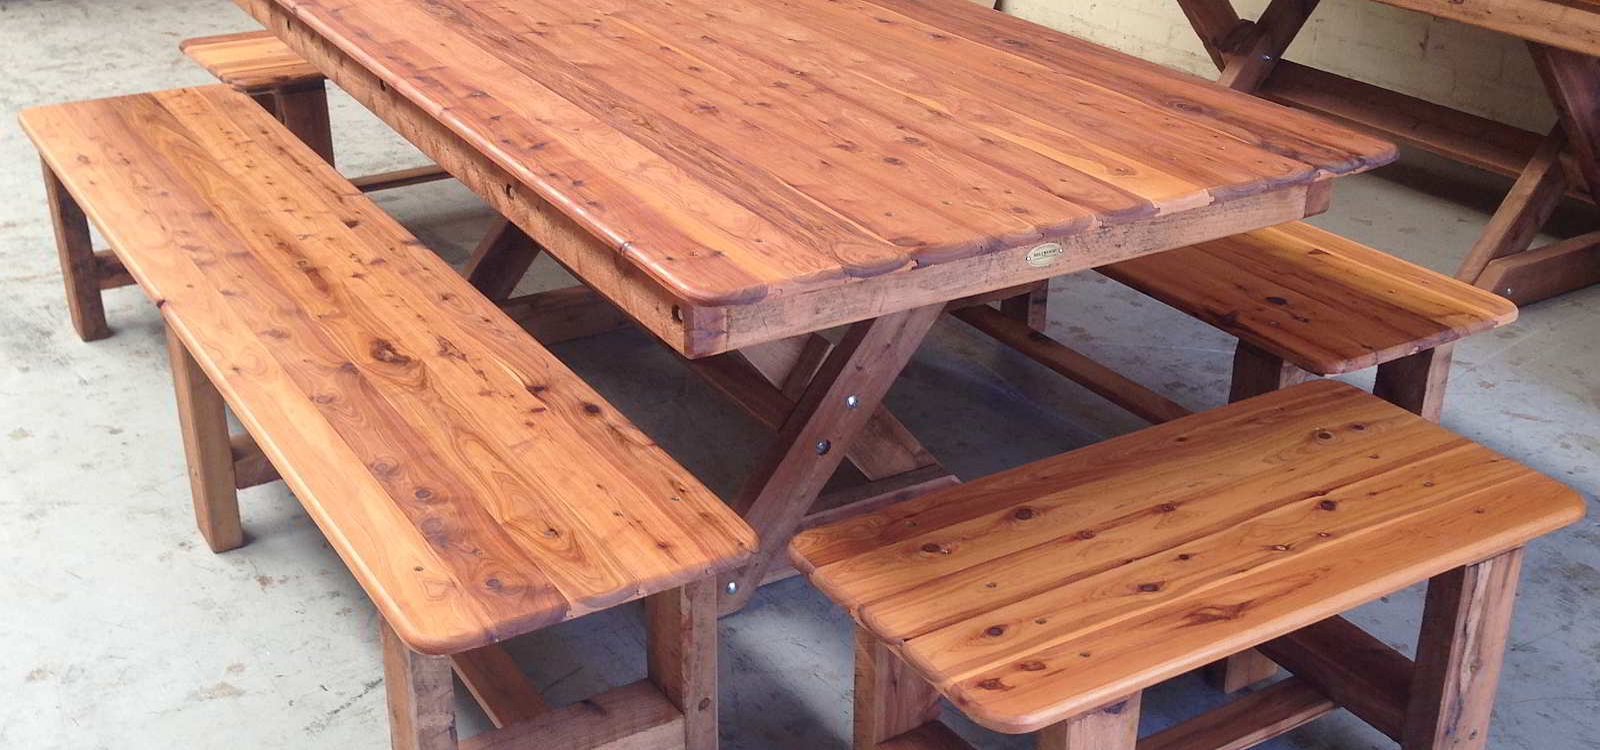 Timber Dining Tables Adelaide Bench Timber Furniture Outdoor Furniture Perth Tables Chairs